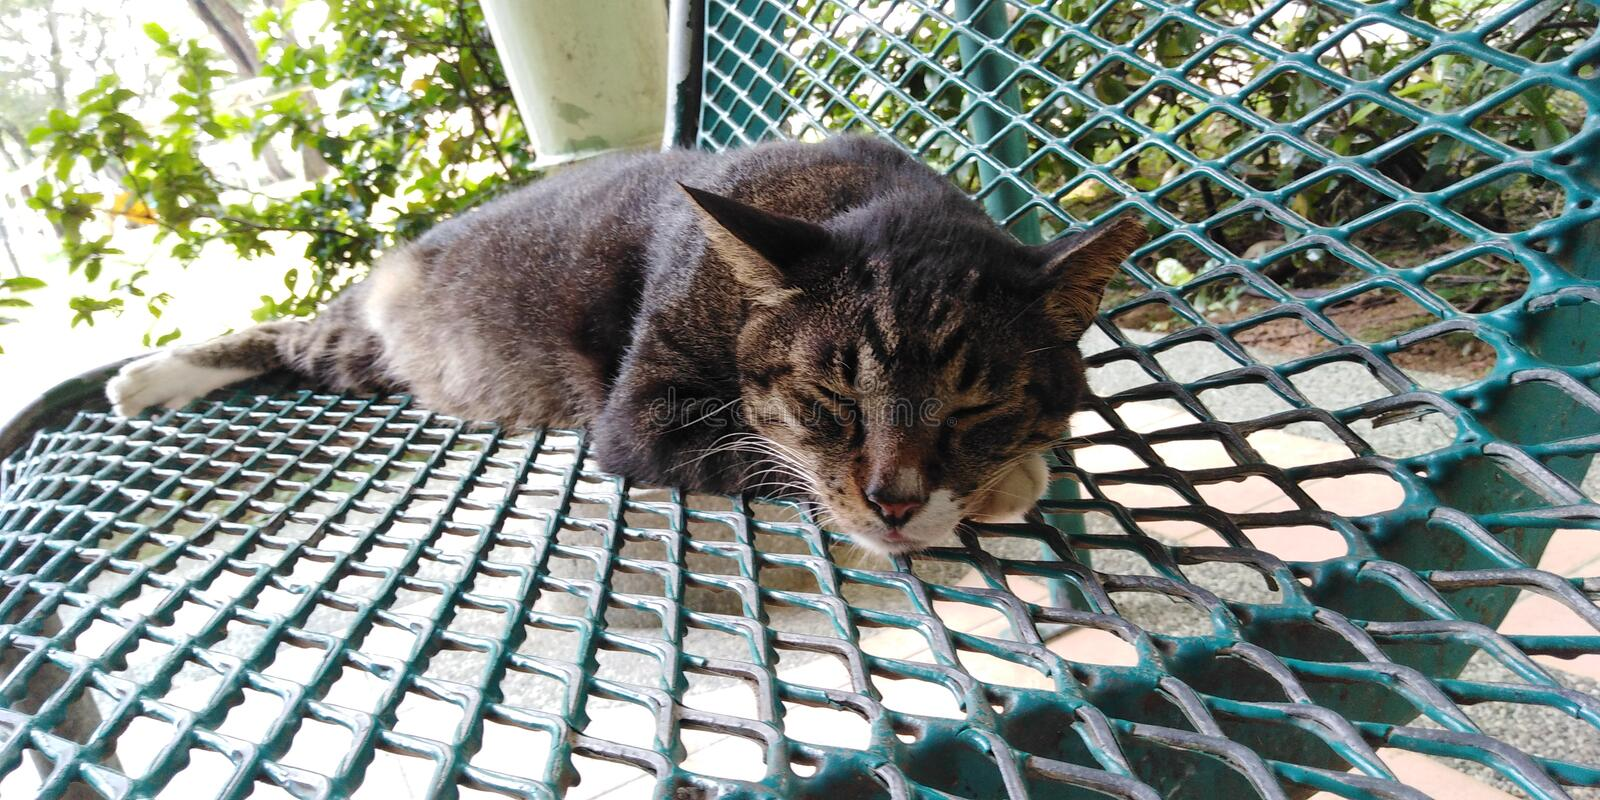 Sleeping cat. Cat taking a nap on a bench in Singapore royalty free stock photography